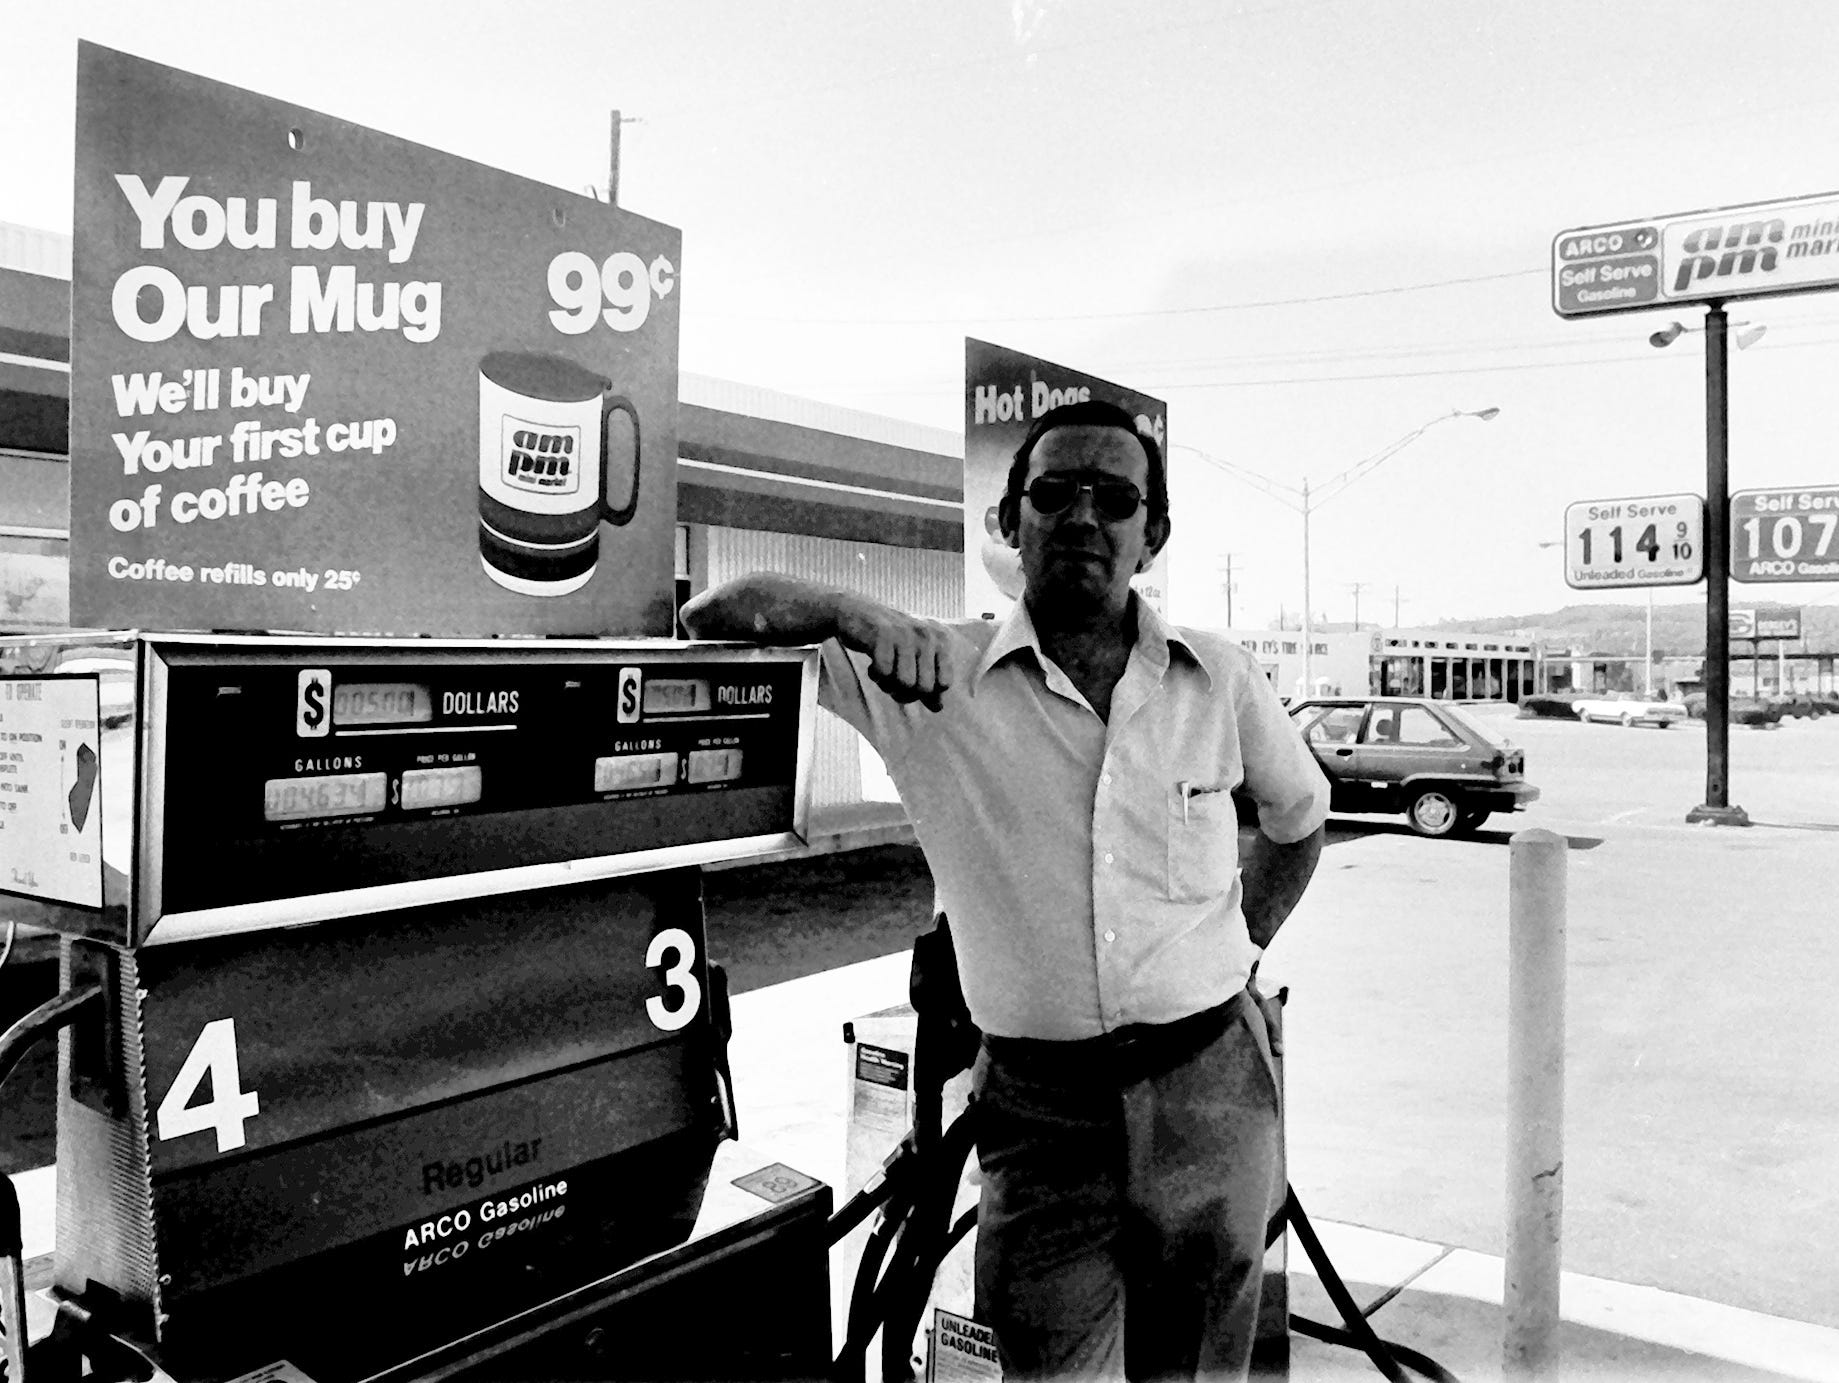 In 1985, this man was pumping gas for $1.07 at an ARCO station in Springettsbury Township.